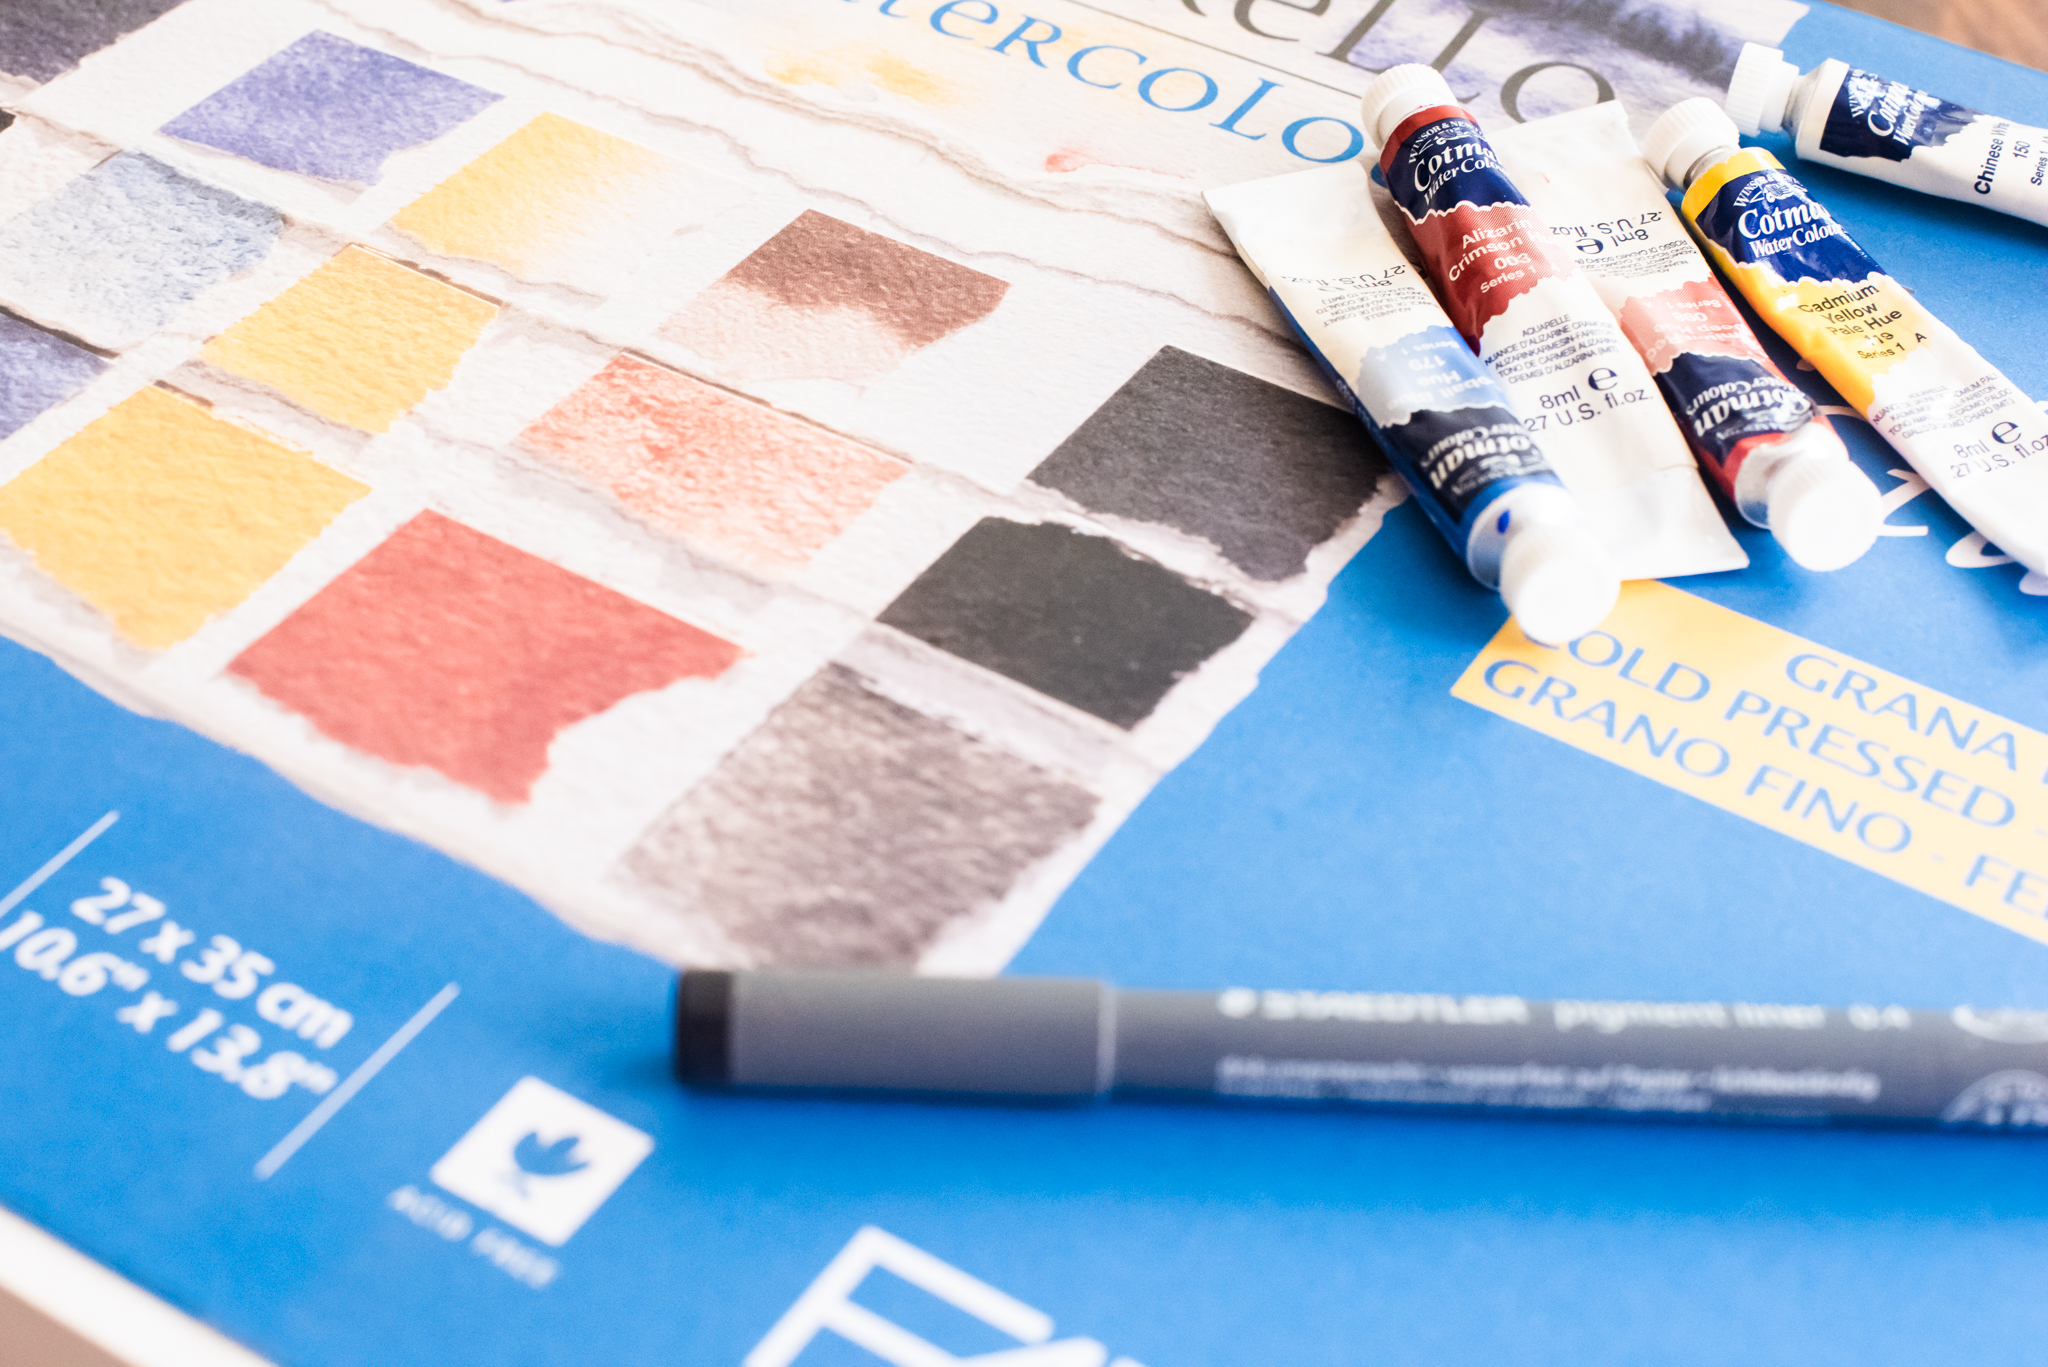 I used heavy (300 gsm) cold-pressed, fine-grain, acid-free paper for the watercolours